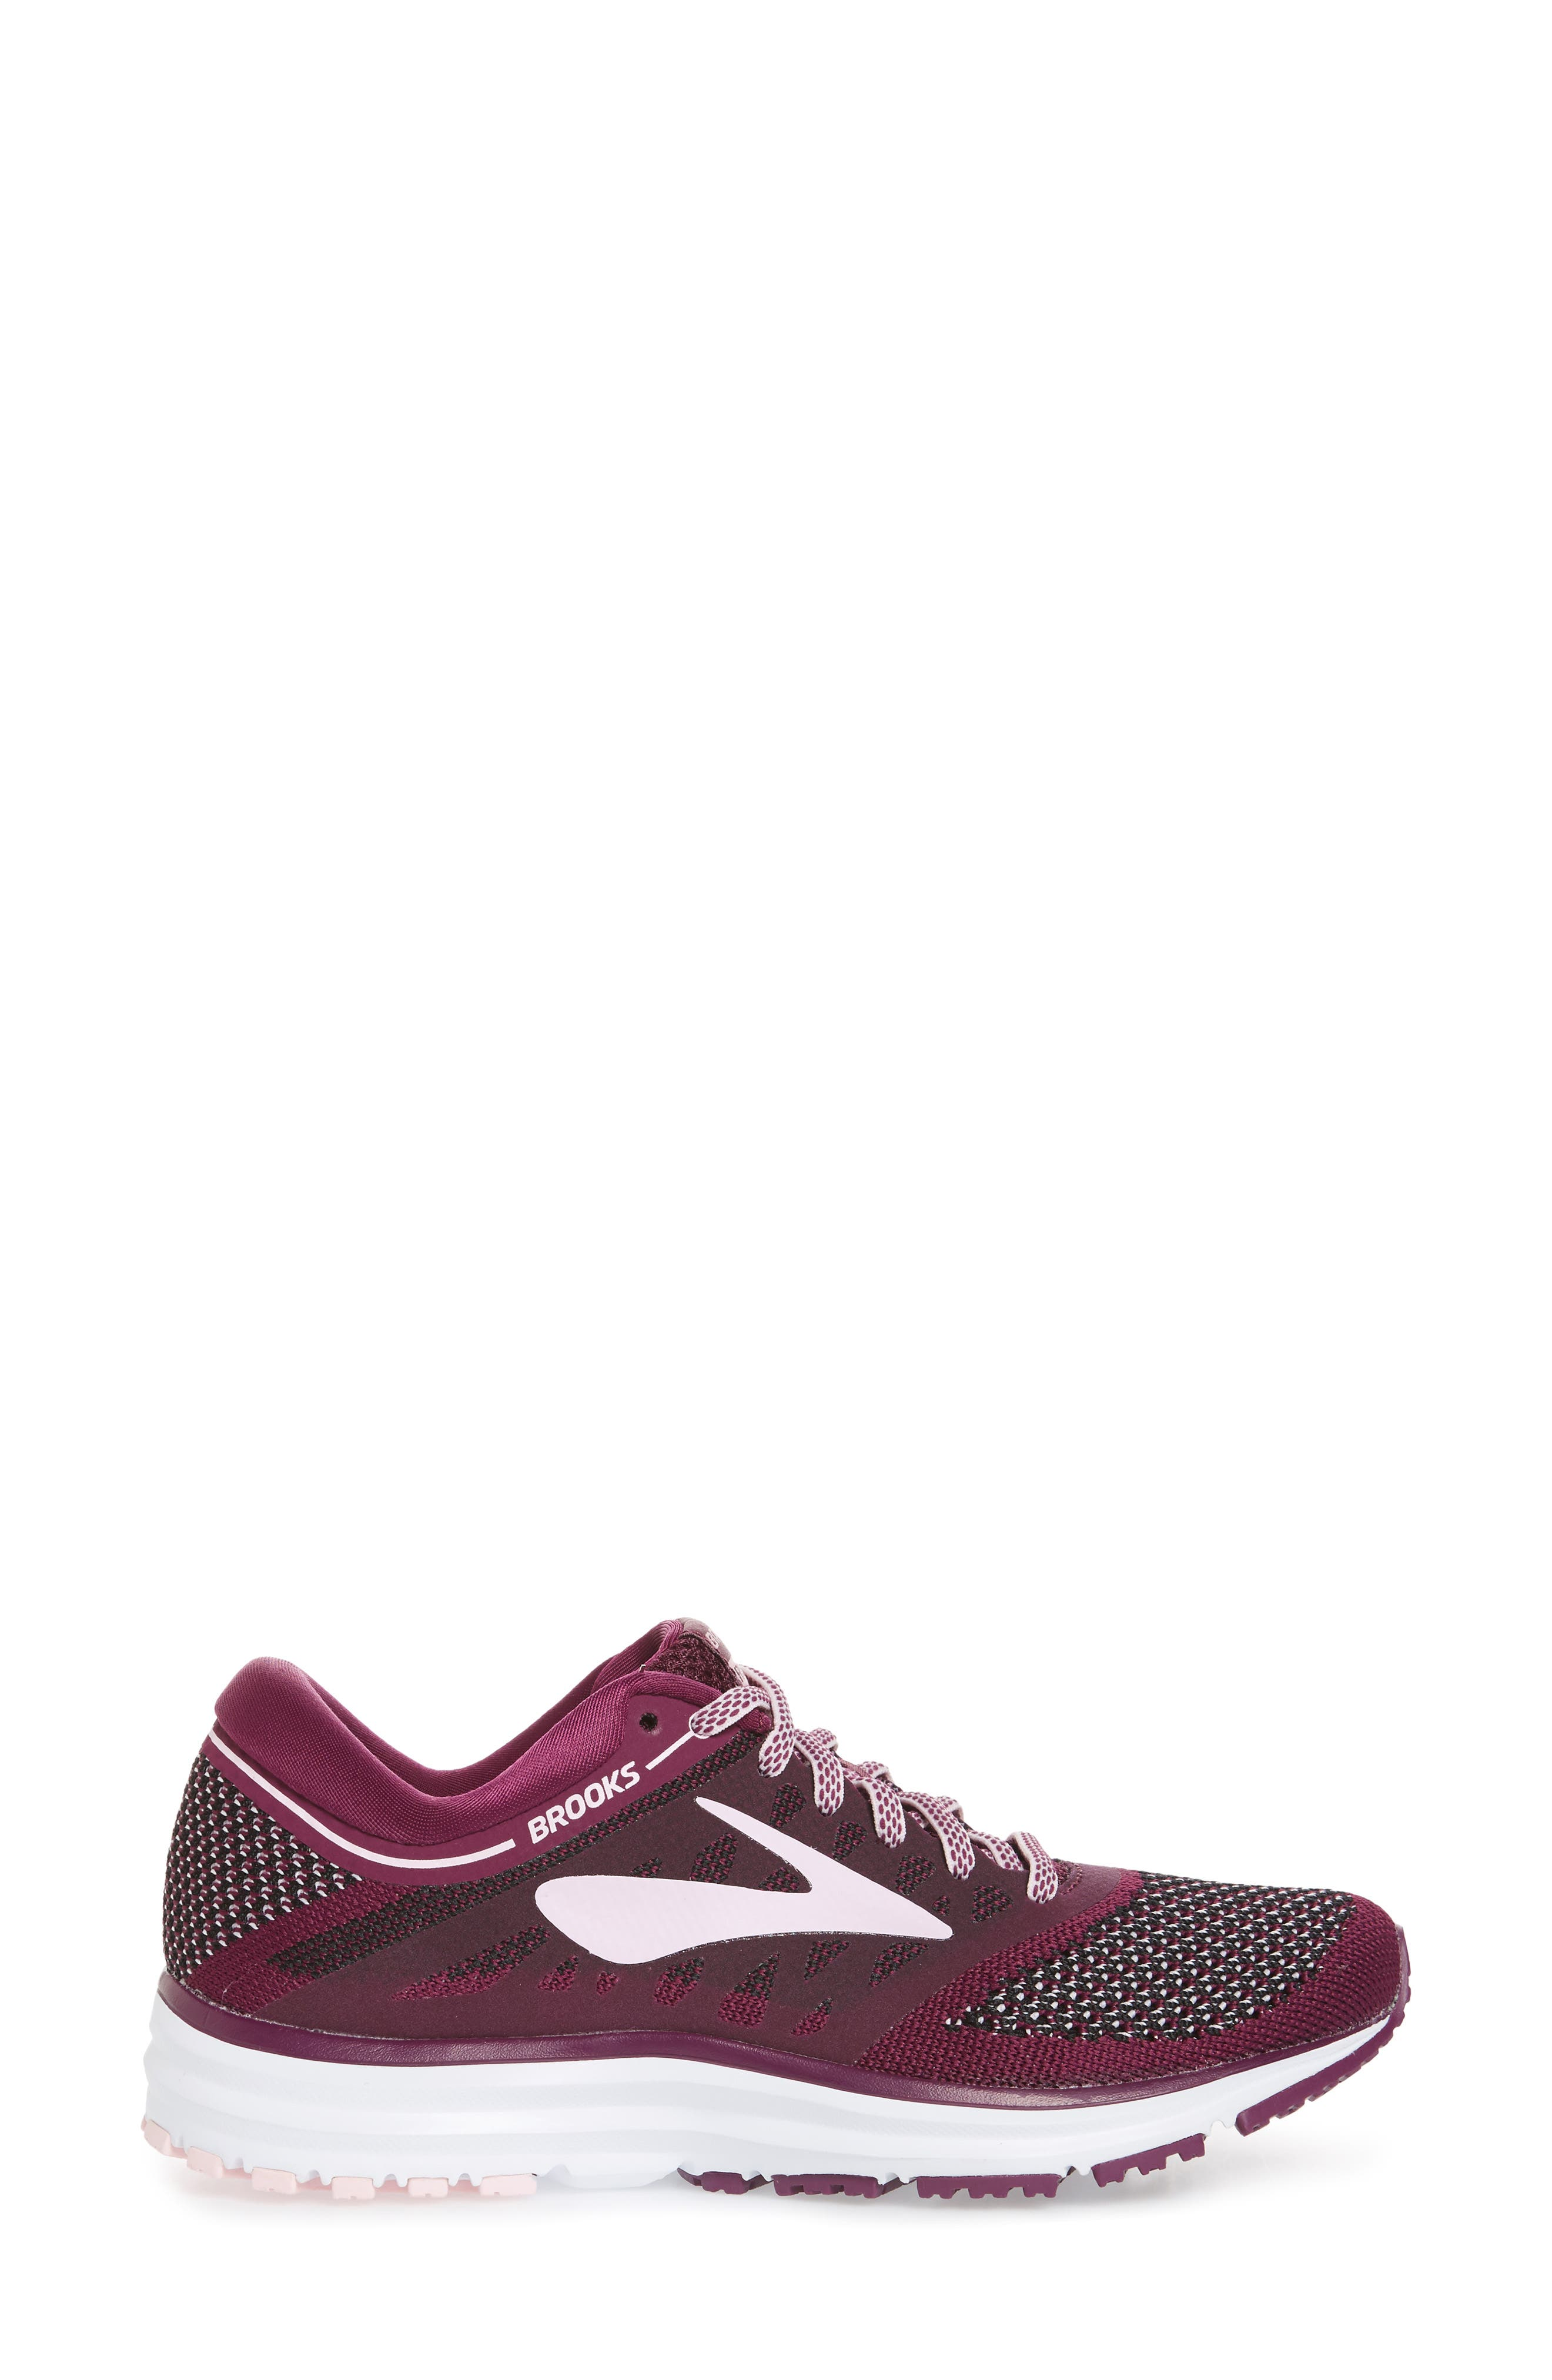 Revel Running Shoe,                             Alternate thumbnail 3, color,                             Plum/ Pink/ Black